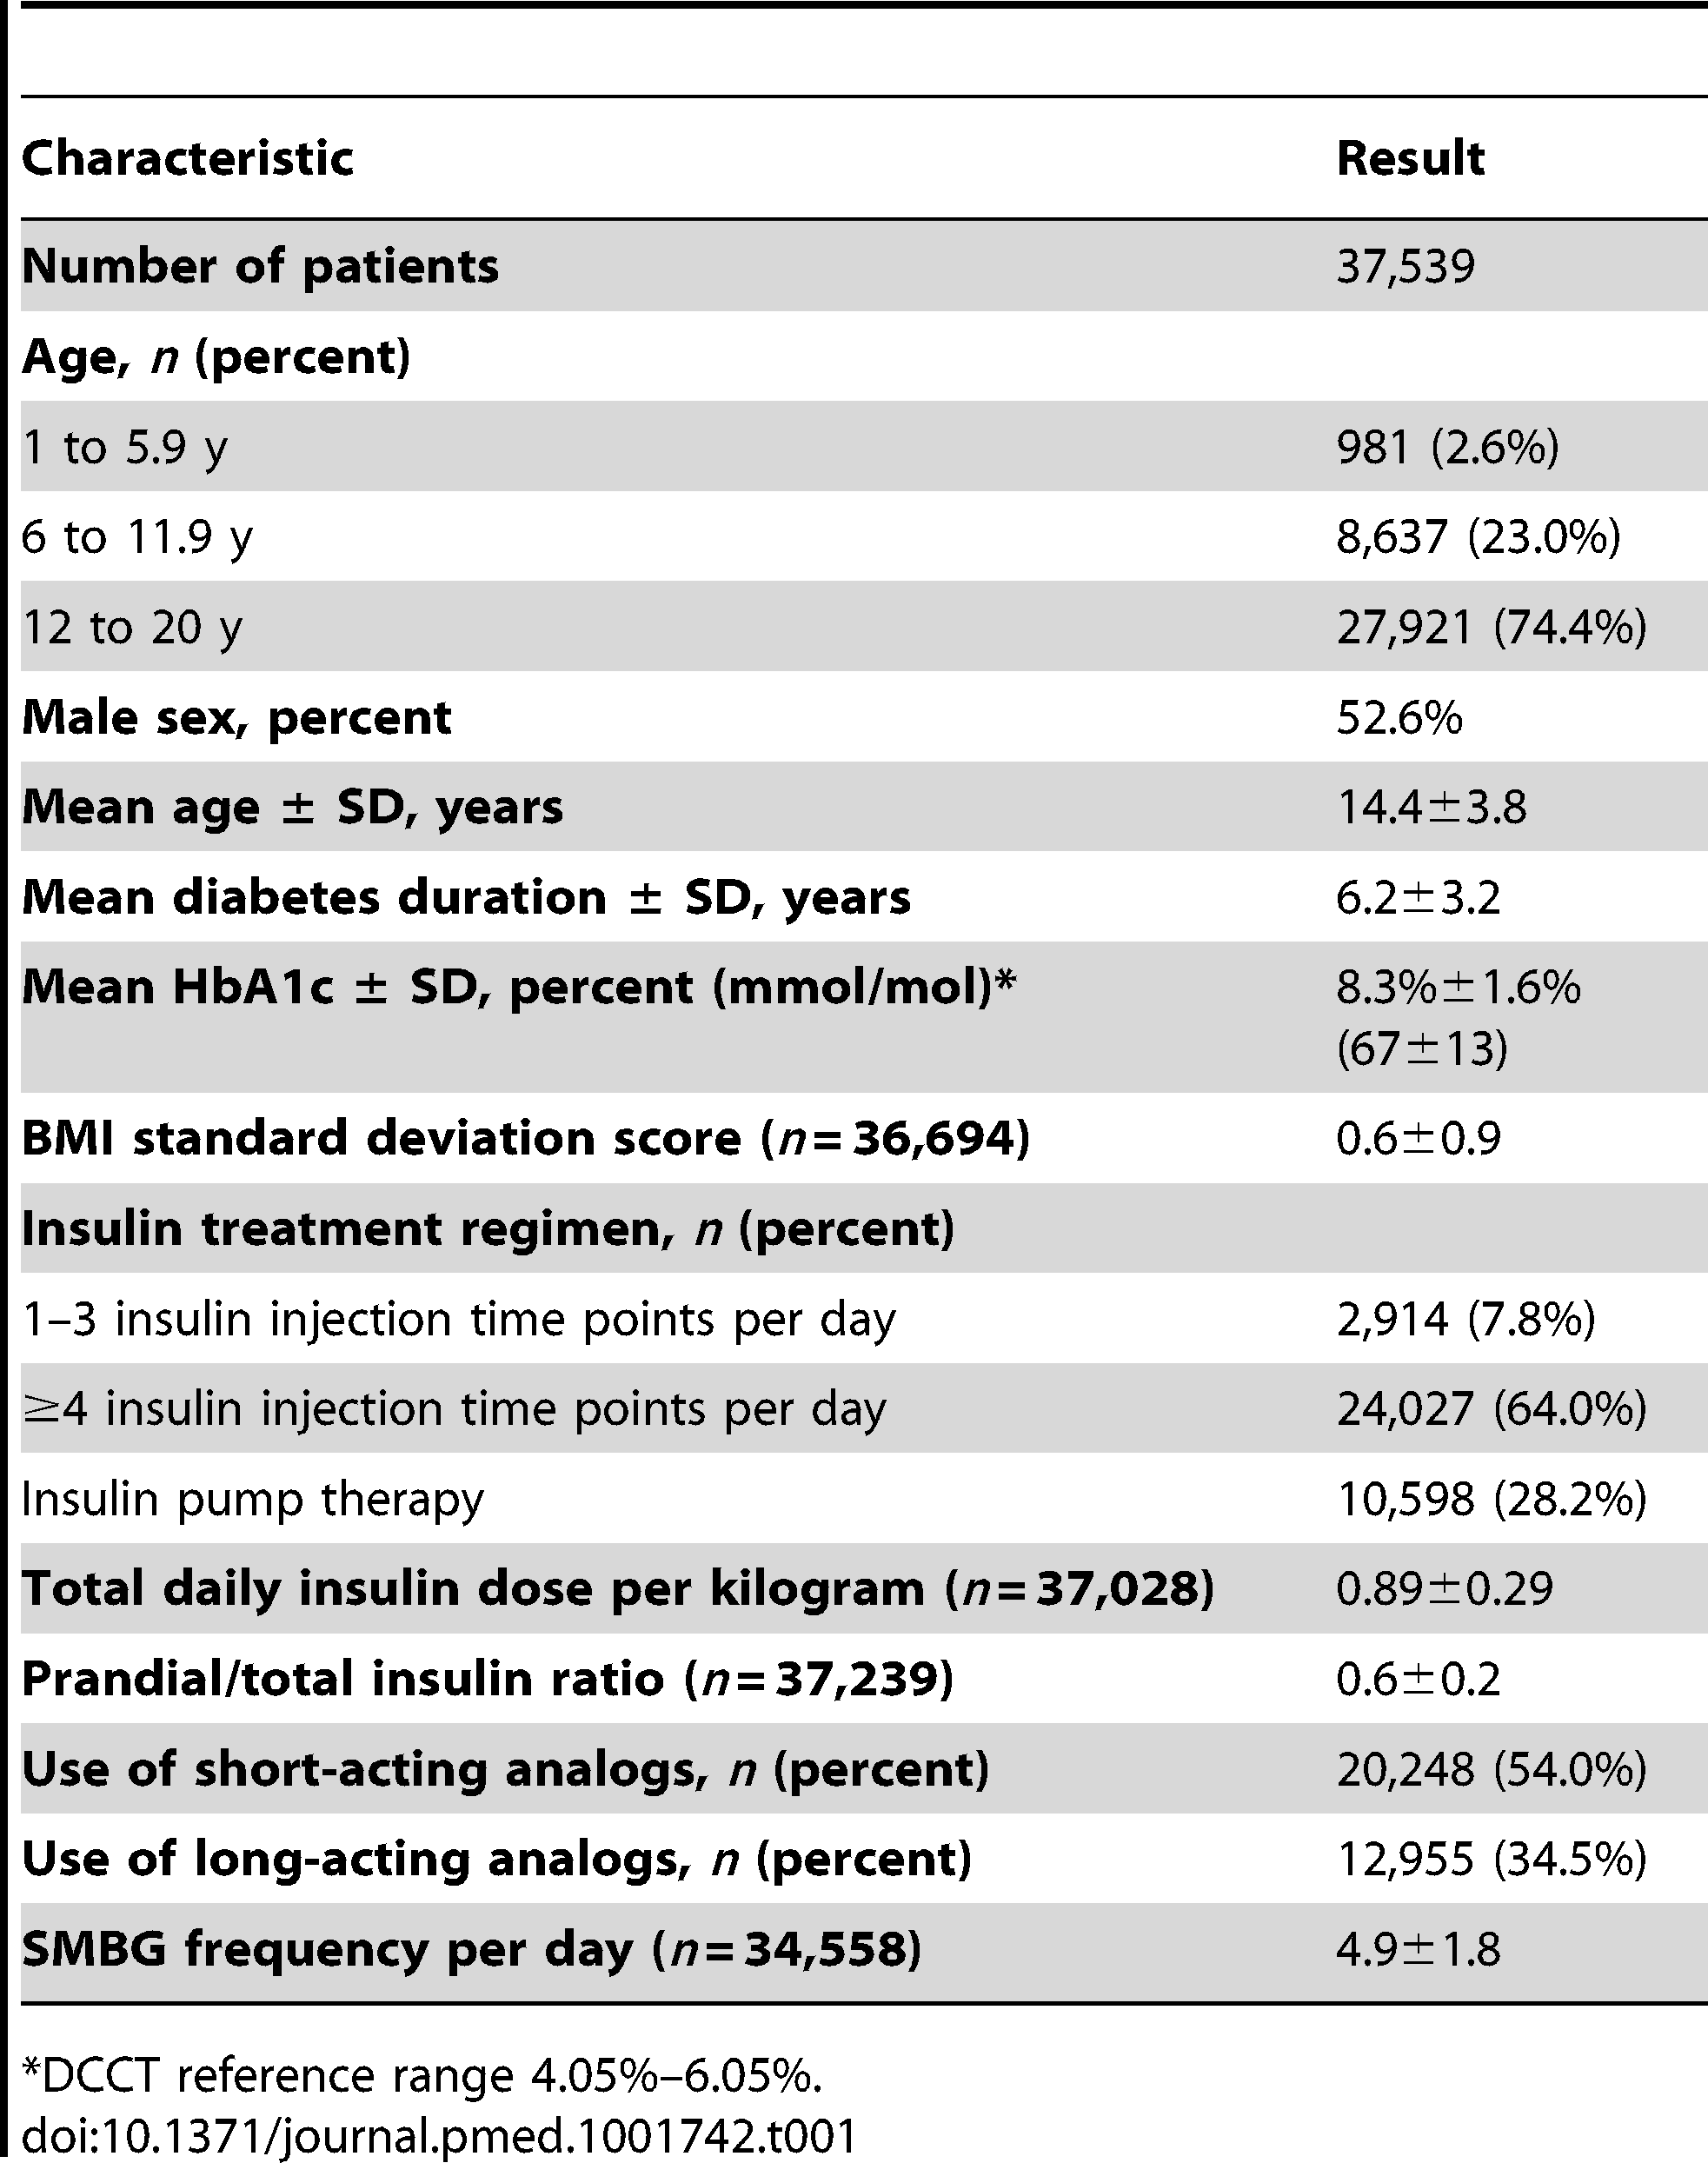 Characteristics of patients with type 1 diabetes treated between 1995 and 2012.